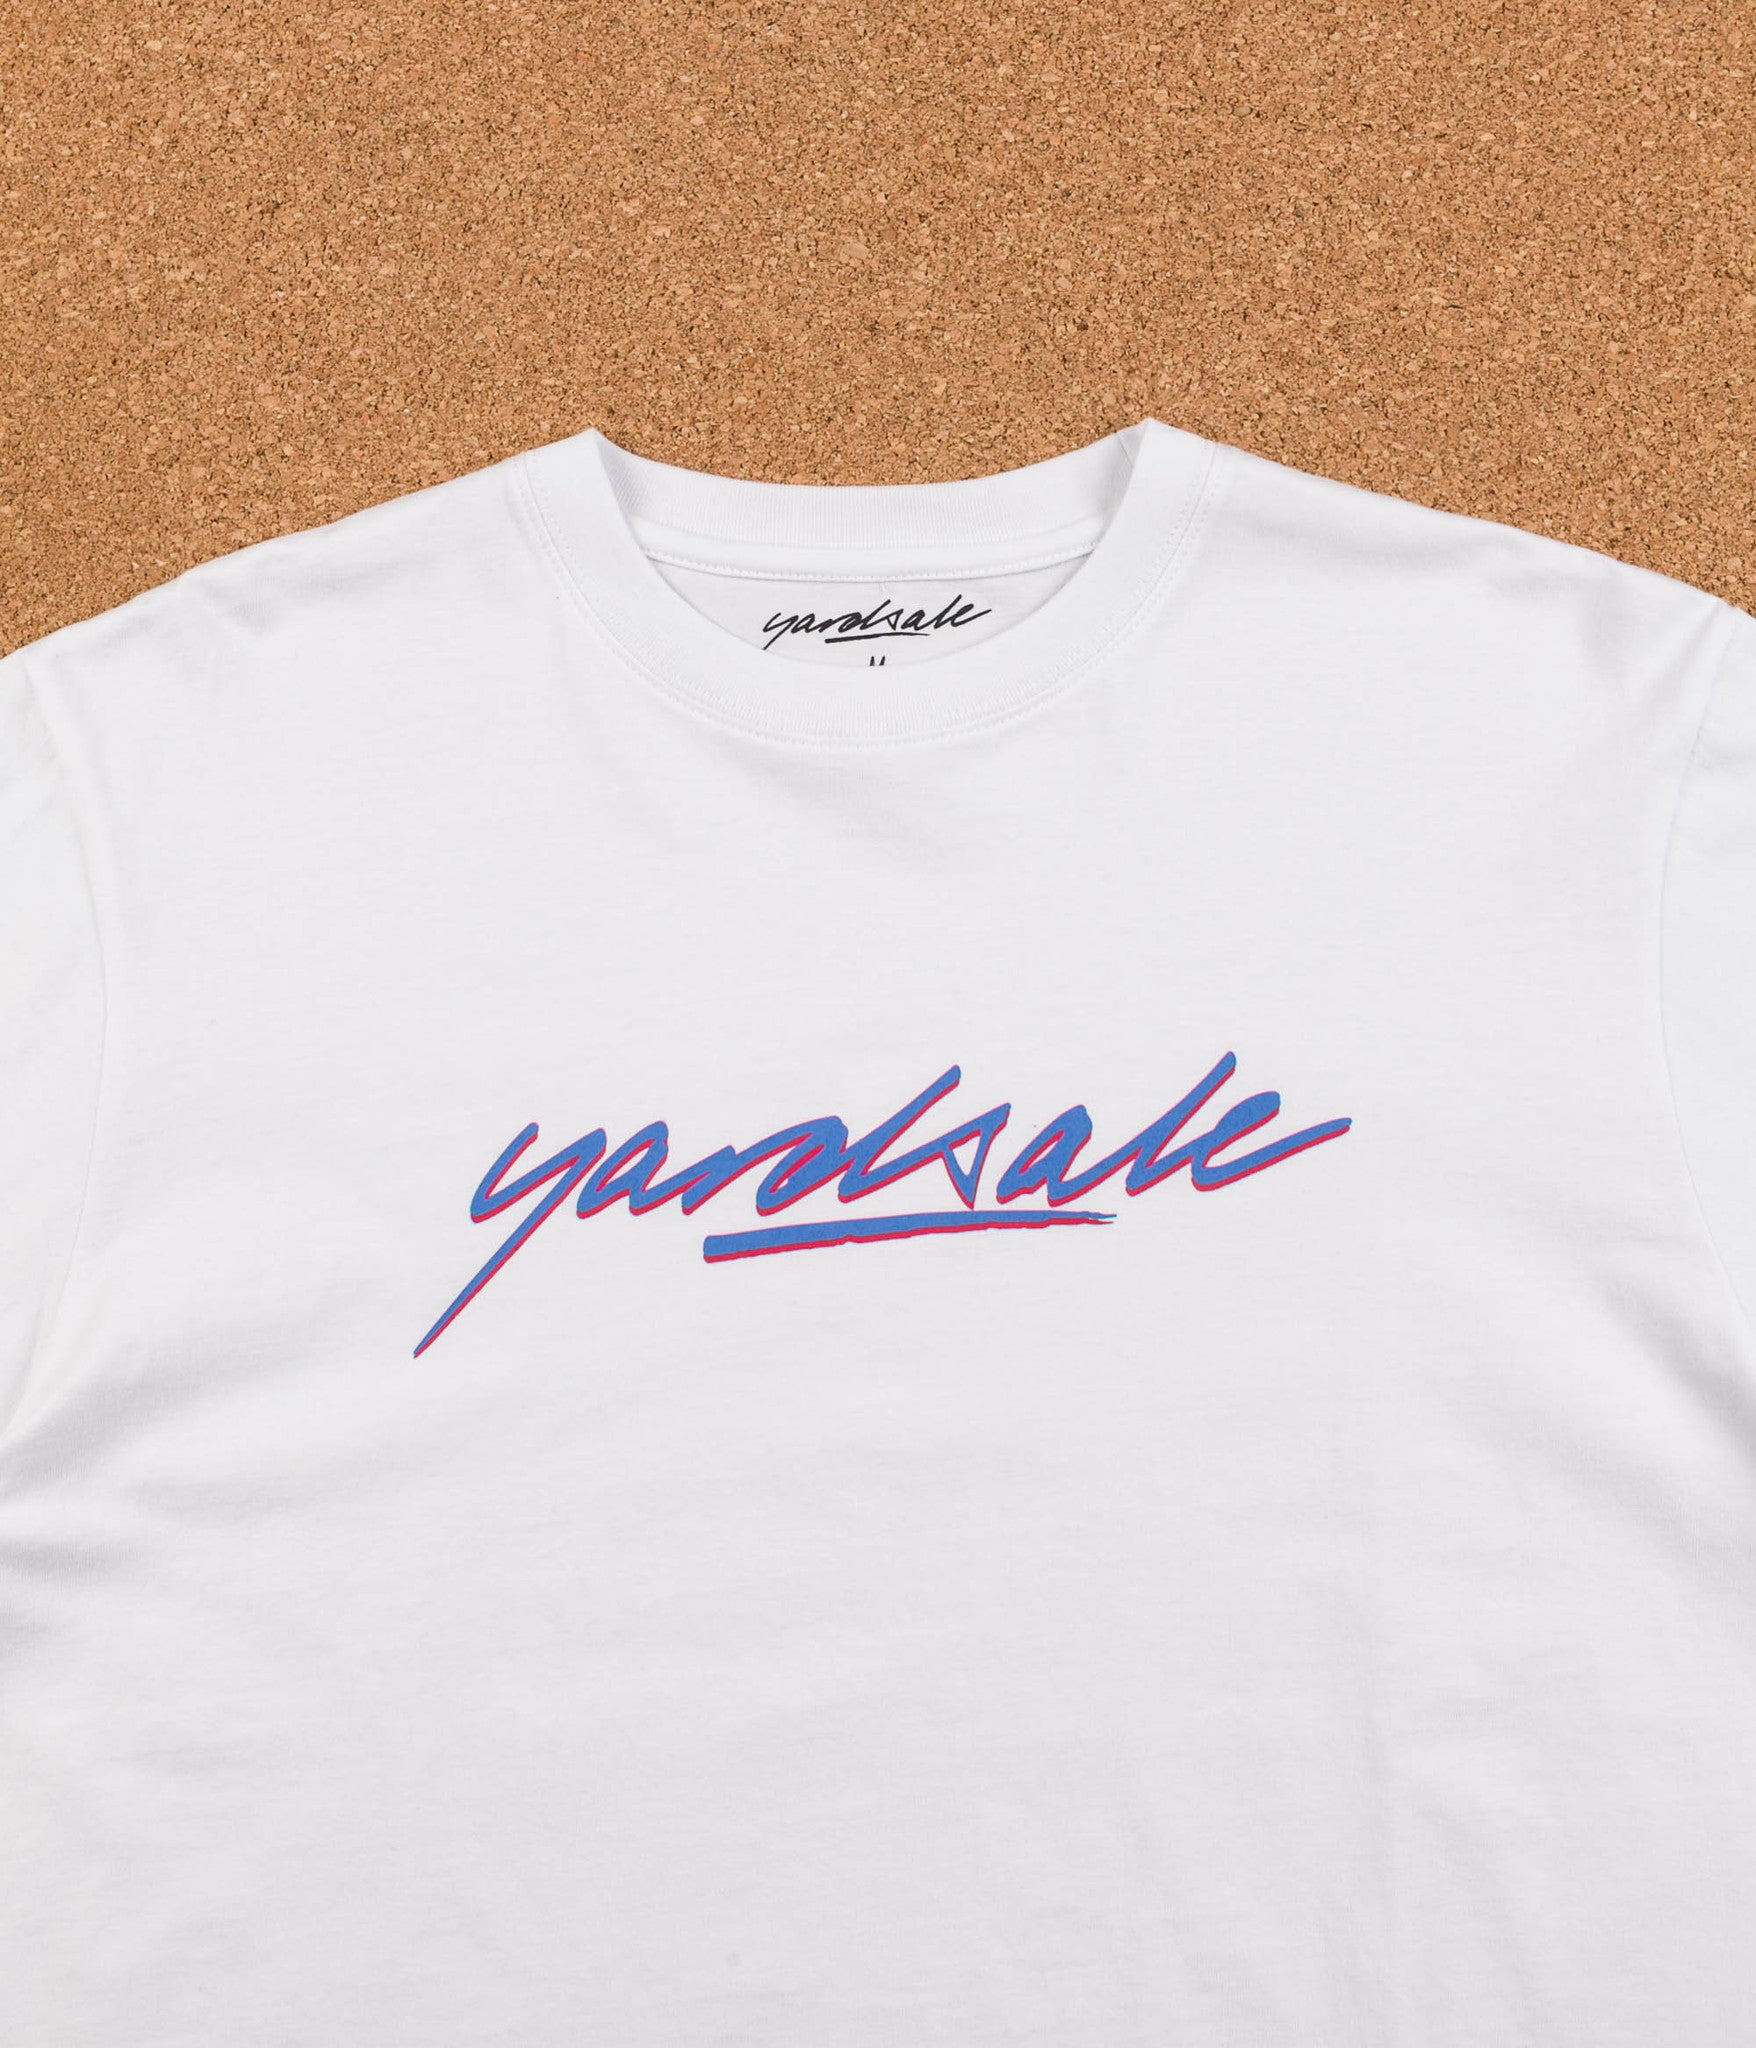 Yardsale Script Long Sleeve T-Shirt - White